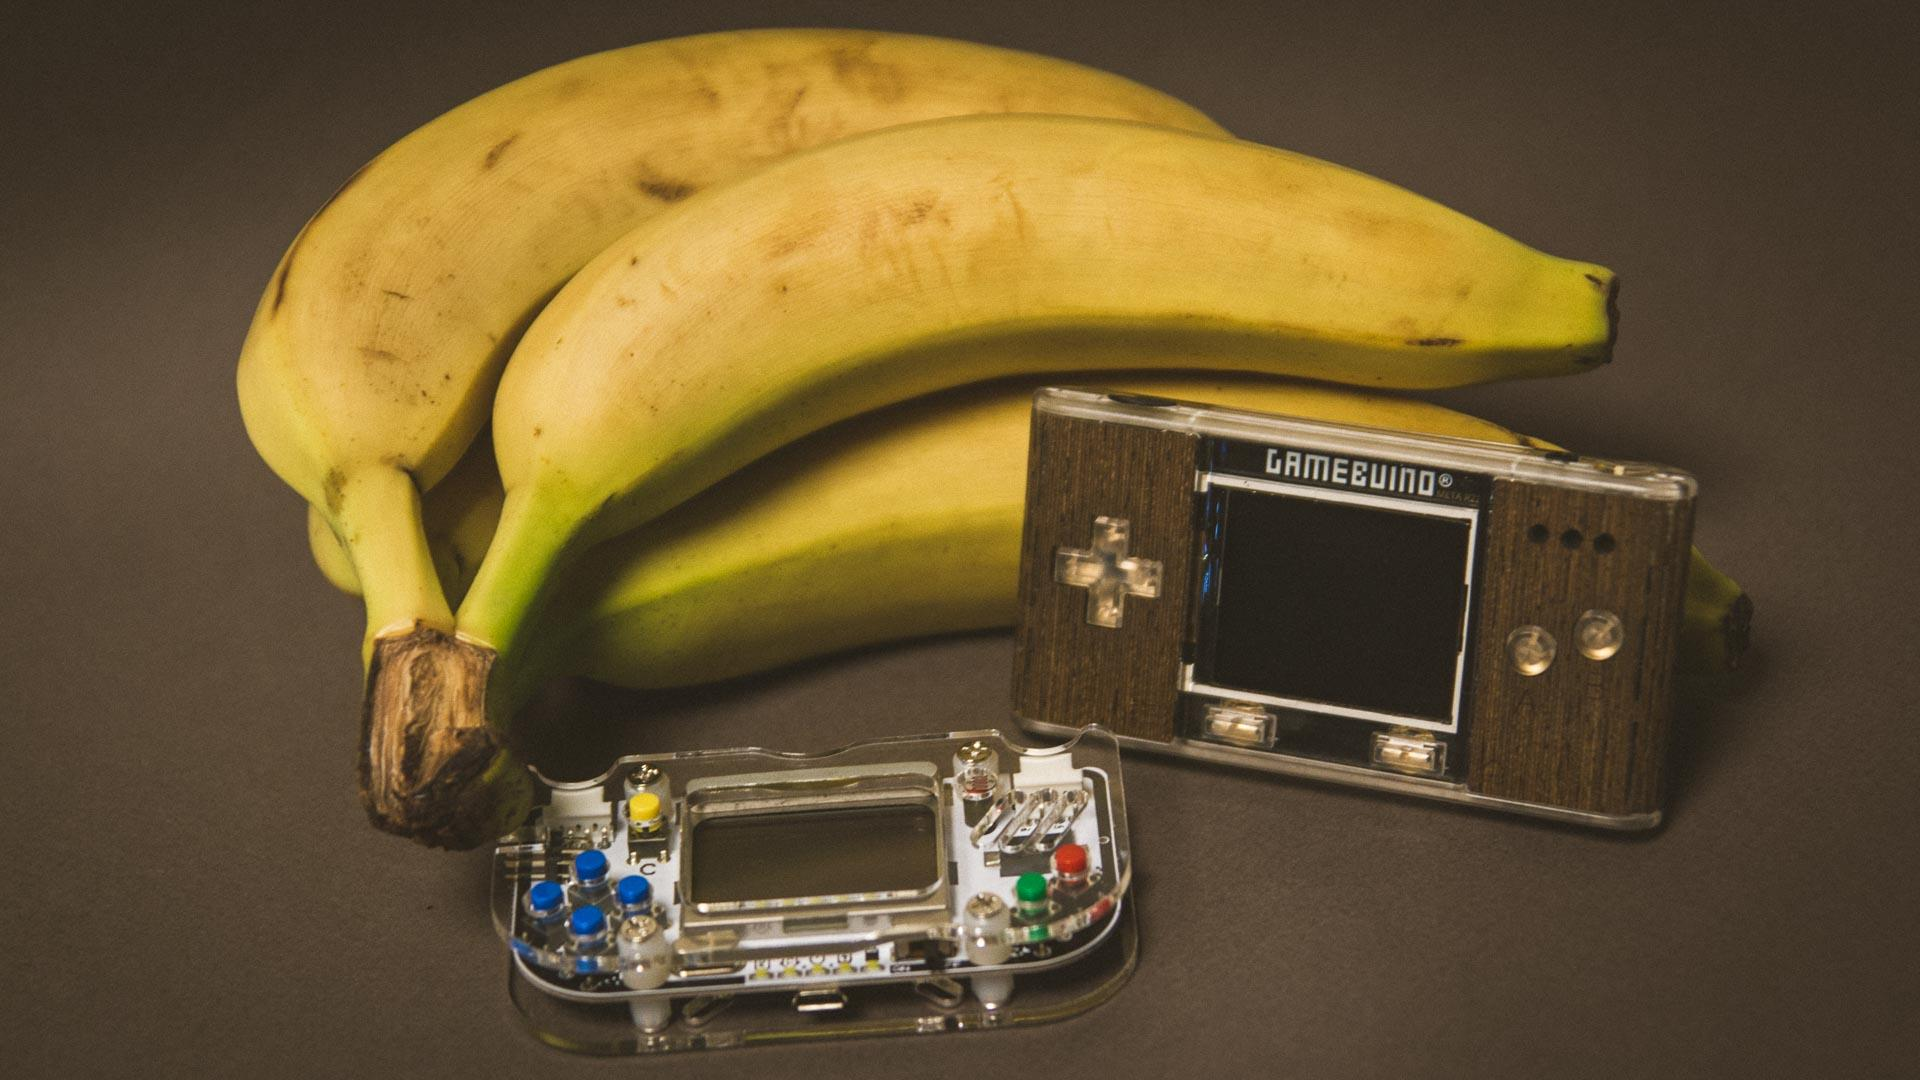 GAMEBUINO META : A retro console to make coding easy #opensource #madeinfrance